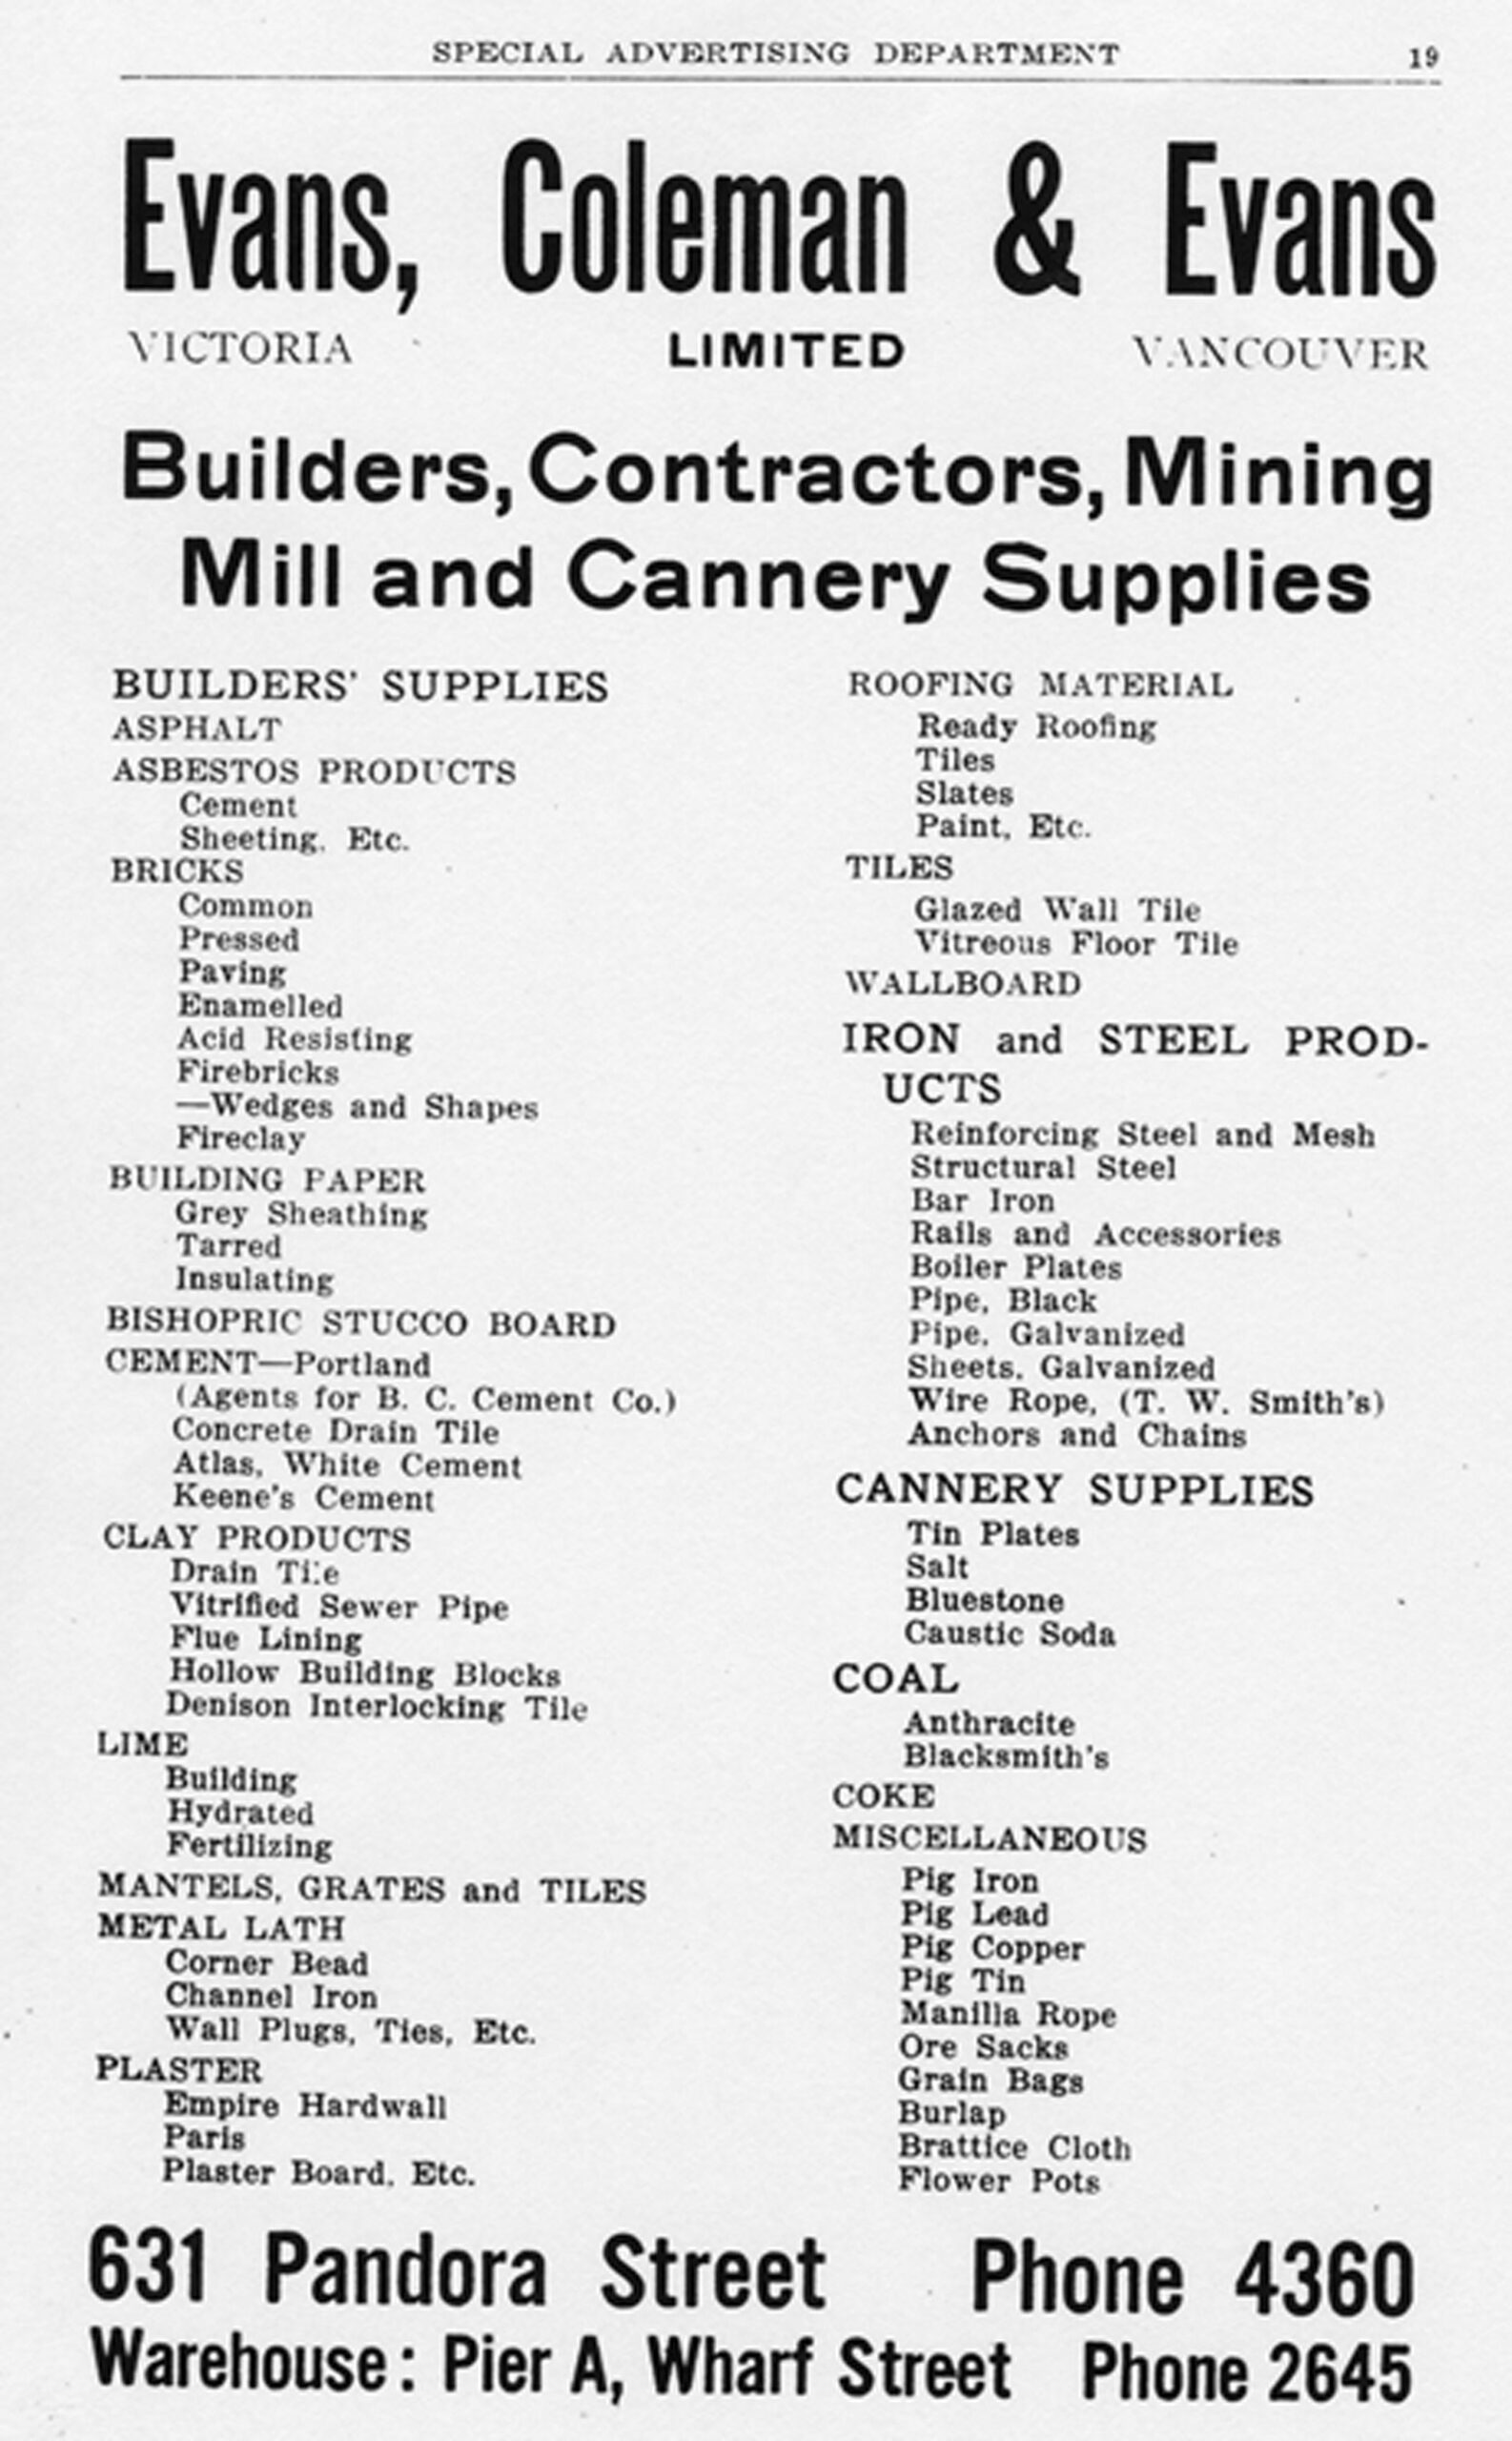 Evans, Coleman & Evans Ltd. advertisement, 1921. This building supplies company acted as a sales agent for the B.C. Cement Company (see heading CEMENT-Portland in advertisement). Robert Butchart was a Director of Evans Coleman & Evans and President of the B.C. Cement Company. (Author's collection)